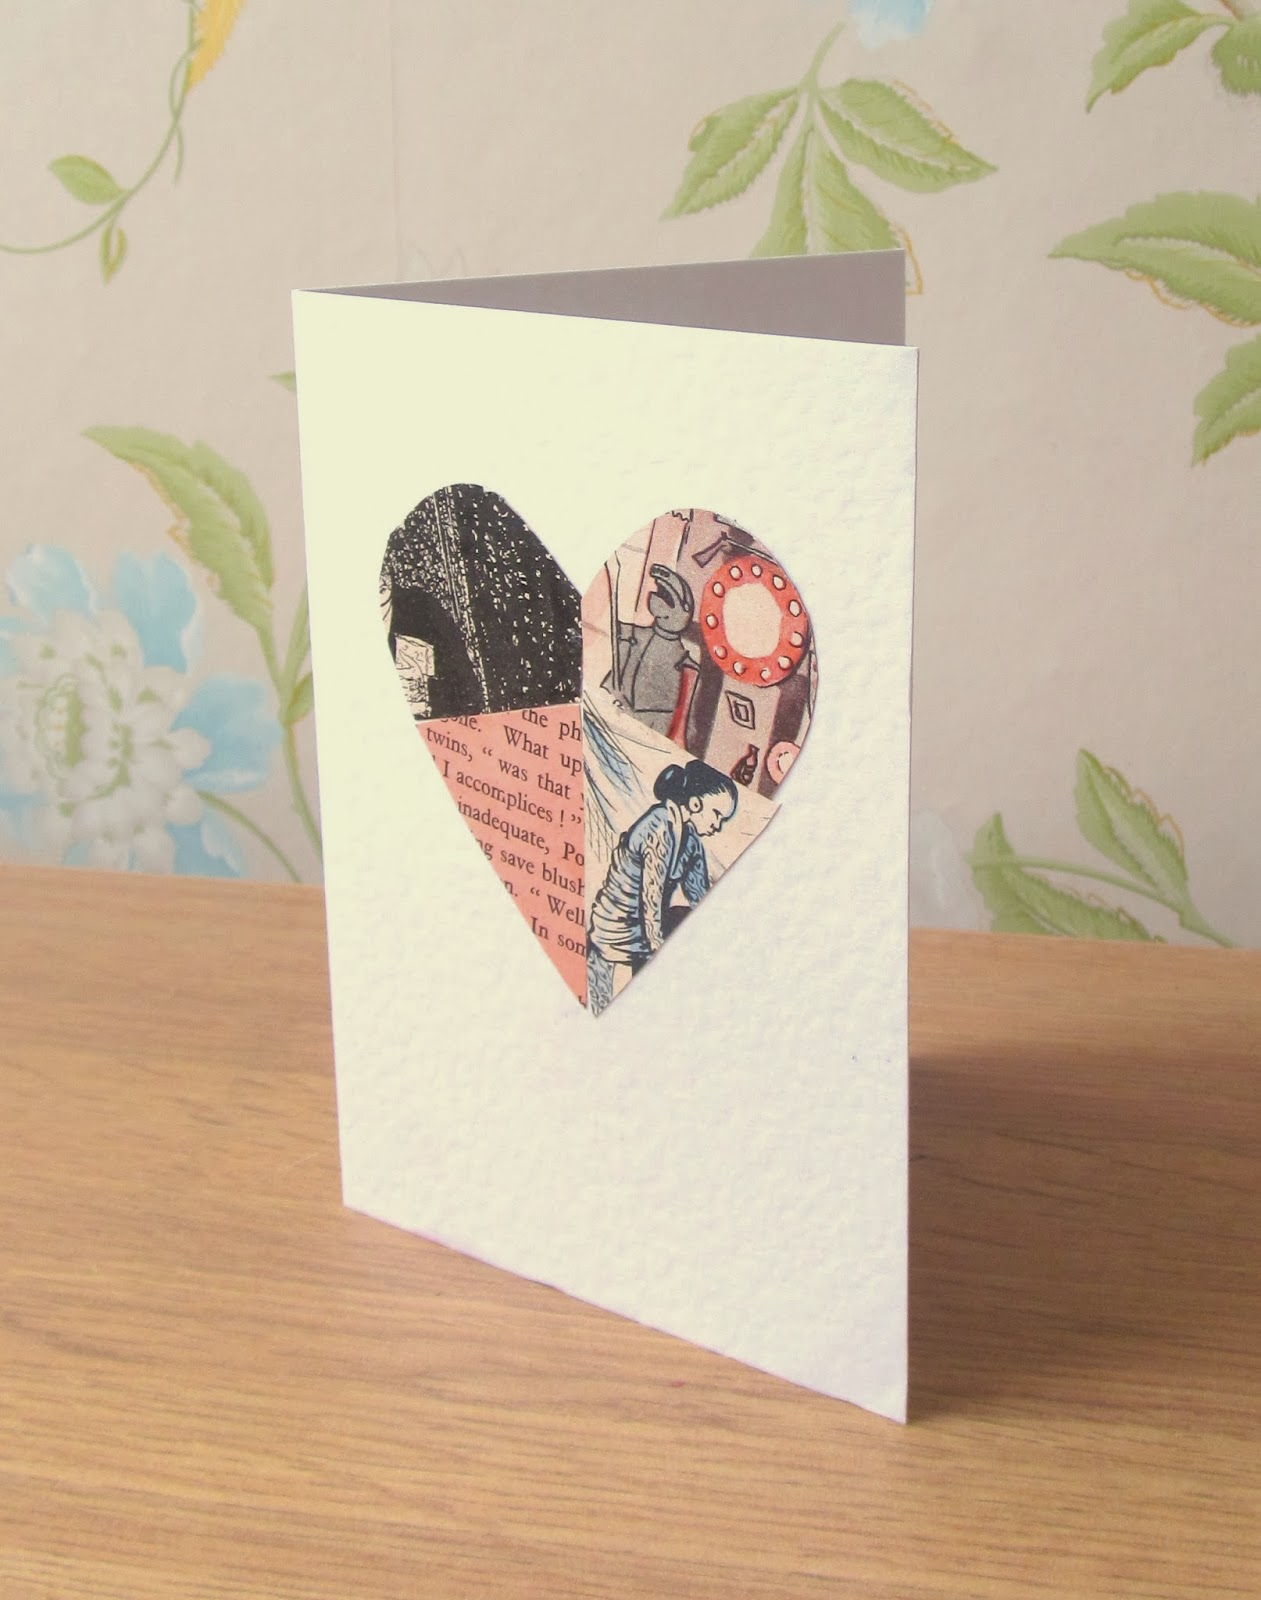 quick handmade card tutorial by Pink Flamingo Handcrafting